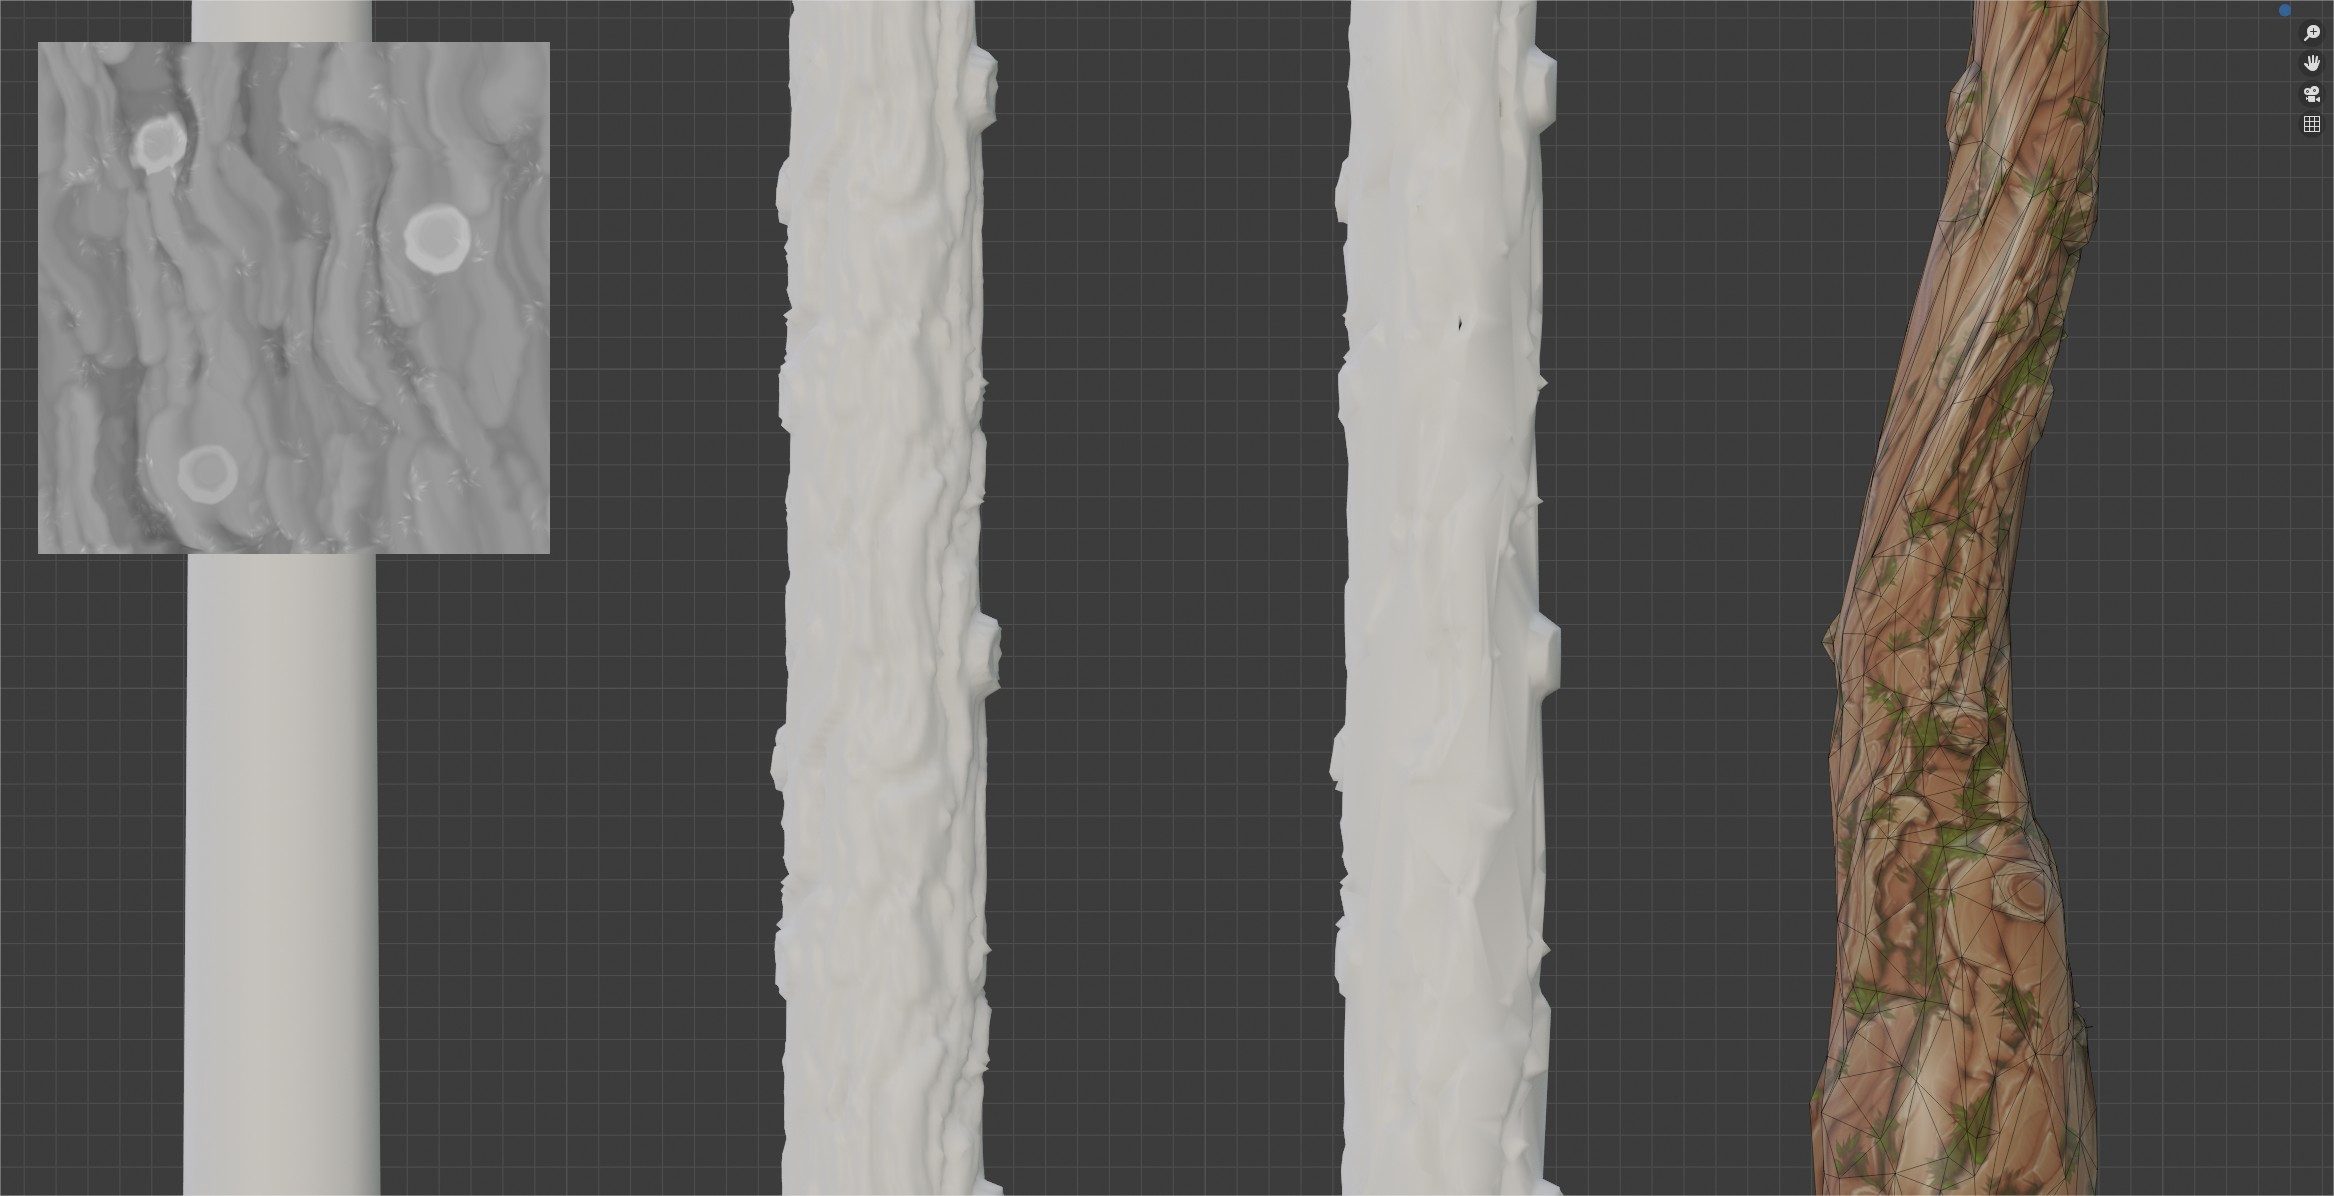 To make the geo of the trees match the texture more i used  displacement on a cylinder with correct UVs and decimated the geo afterwords in blender. It did require some cleanup but i was surprised how well it worked in this case.